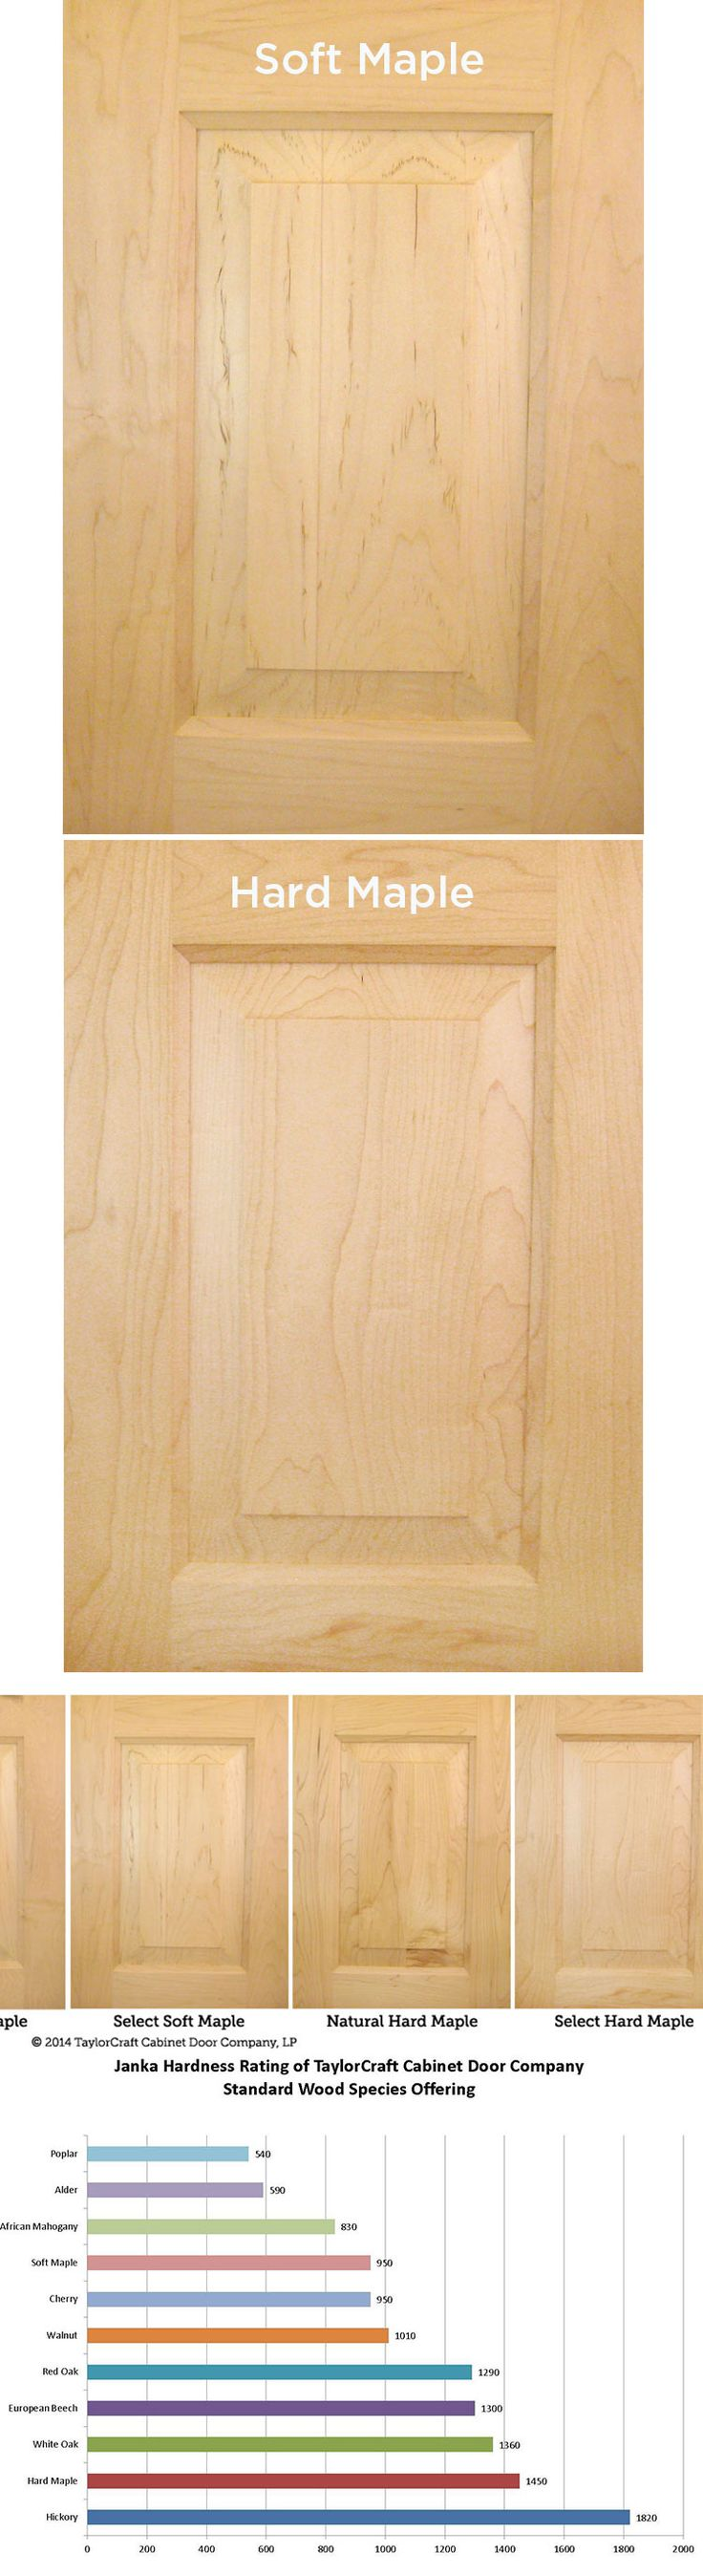 22 Best Maple Cabinet Doors Images On Pinterest Maple Cabinets